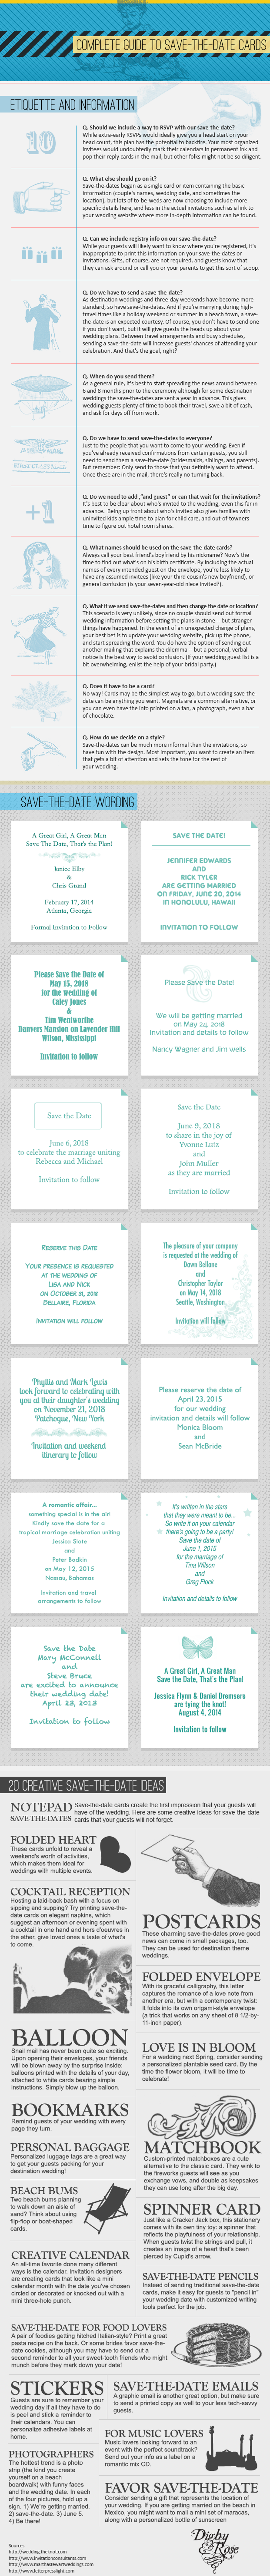 15 Destination Wedding Save the Date Wording Examples – Save the Date Wedding Wording Examples